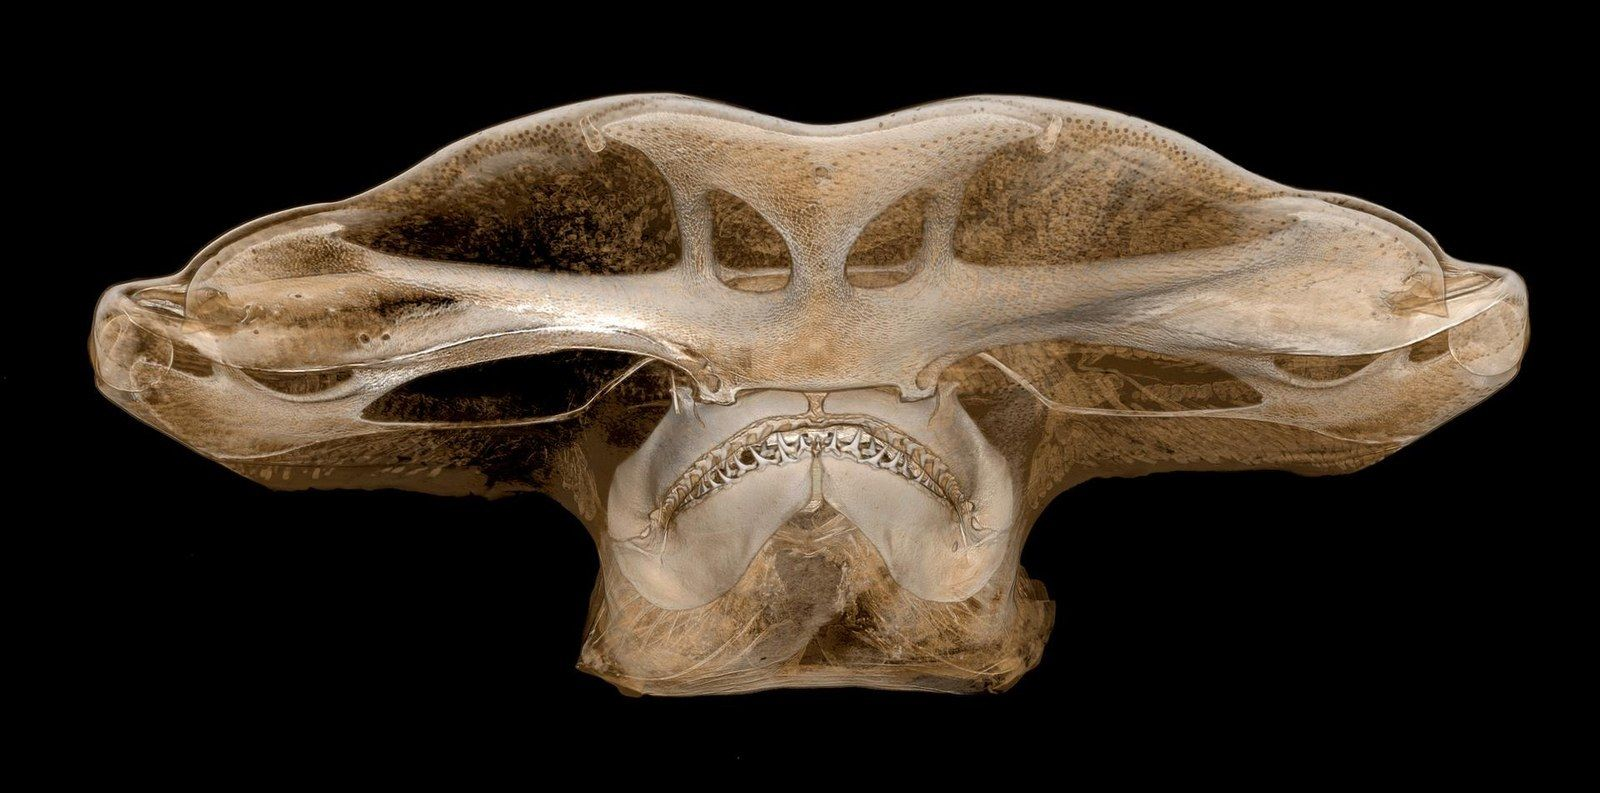 32 Of The Year S Most Amazing Science Pictures Hammerhead Shark